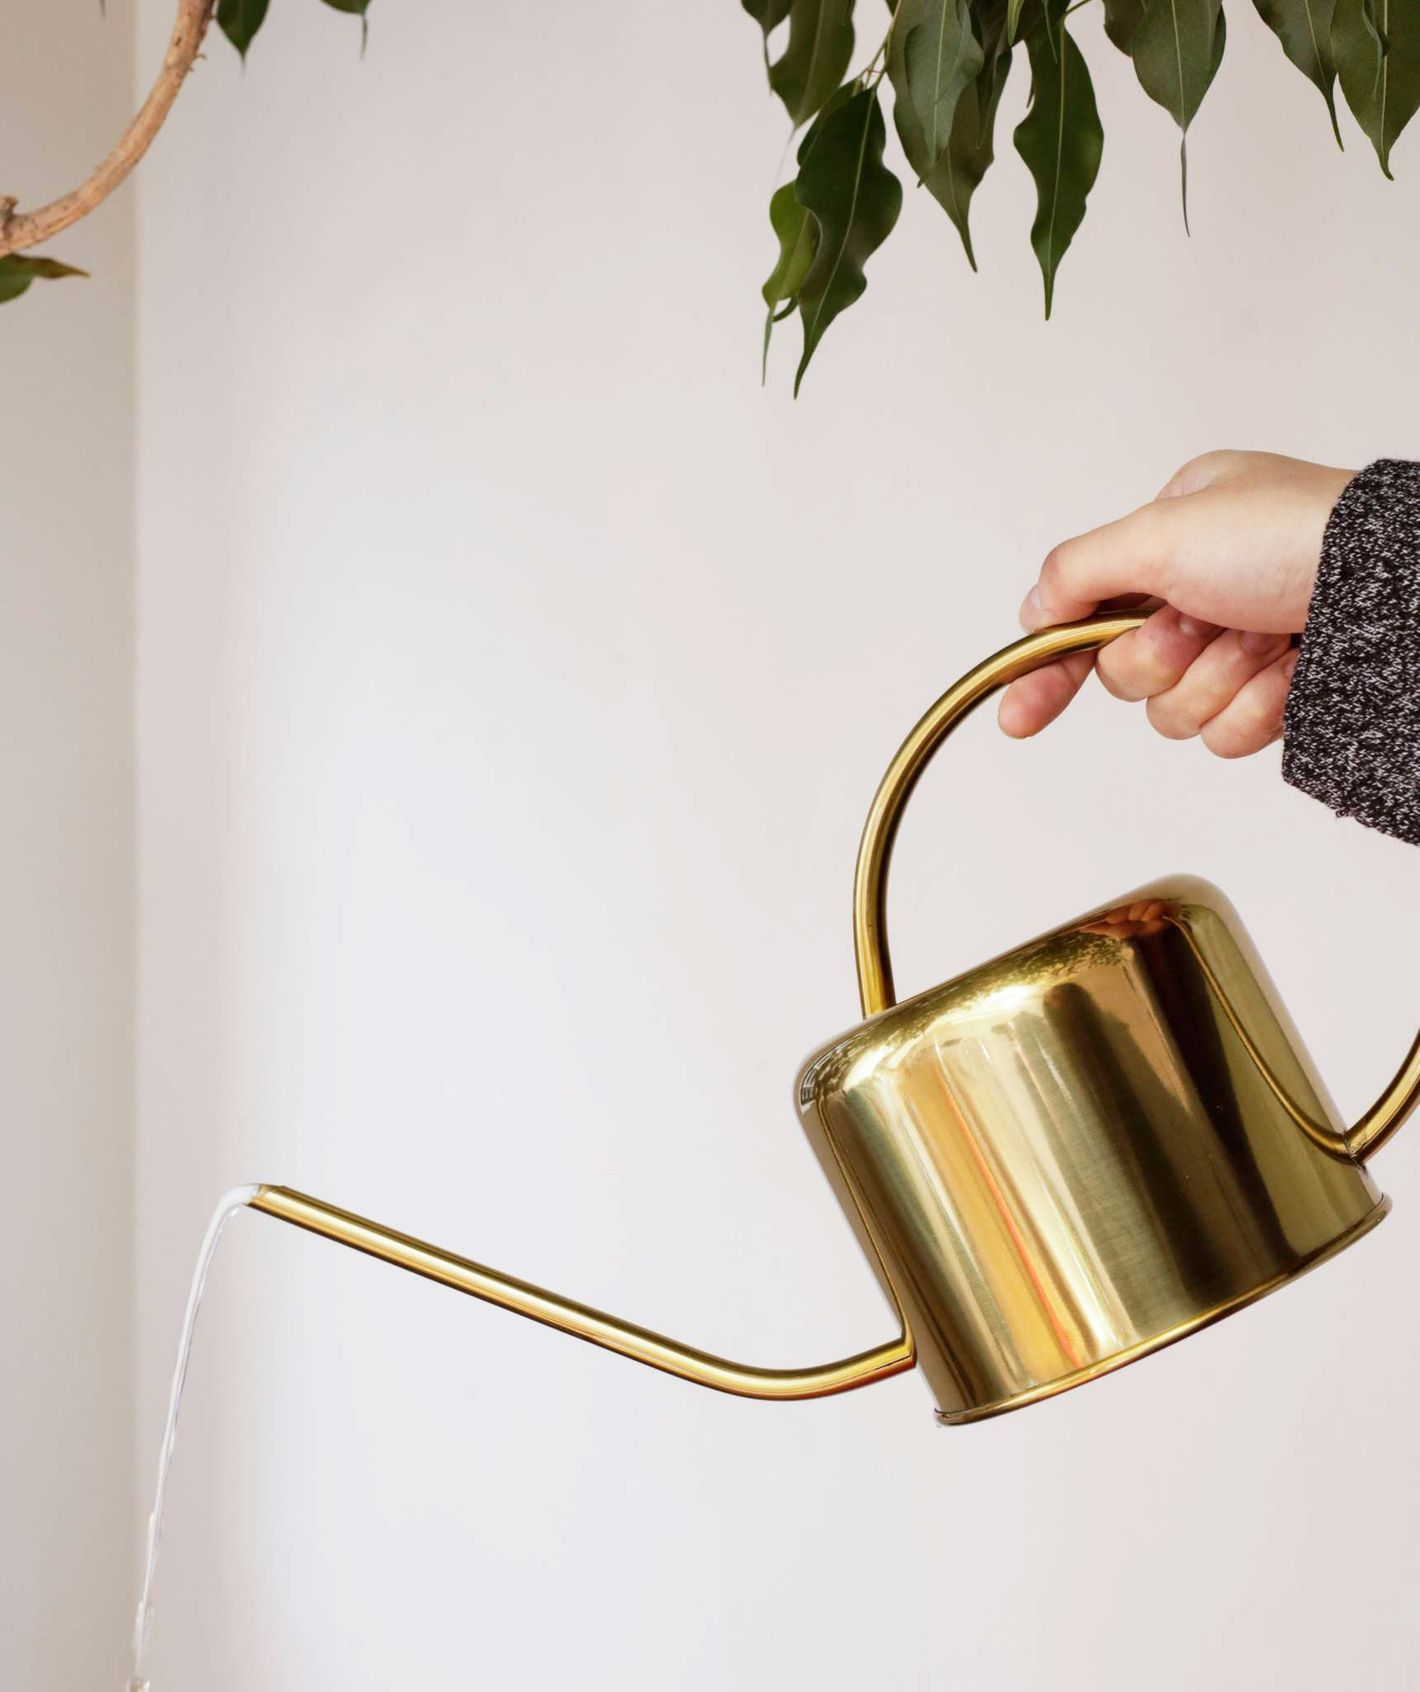 Kikkerland Vintage Stainless Steel Watering Can